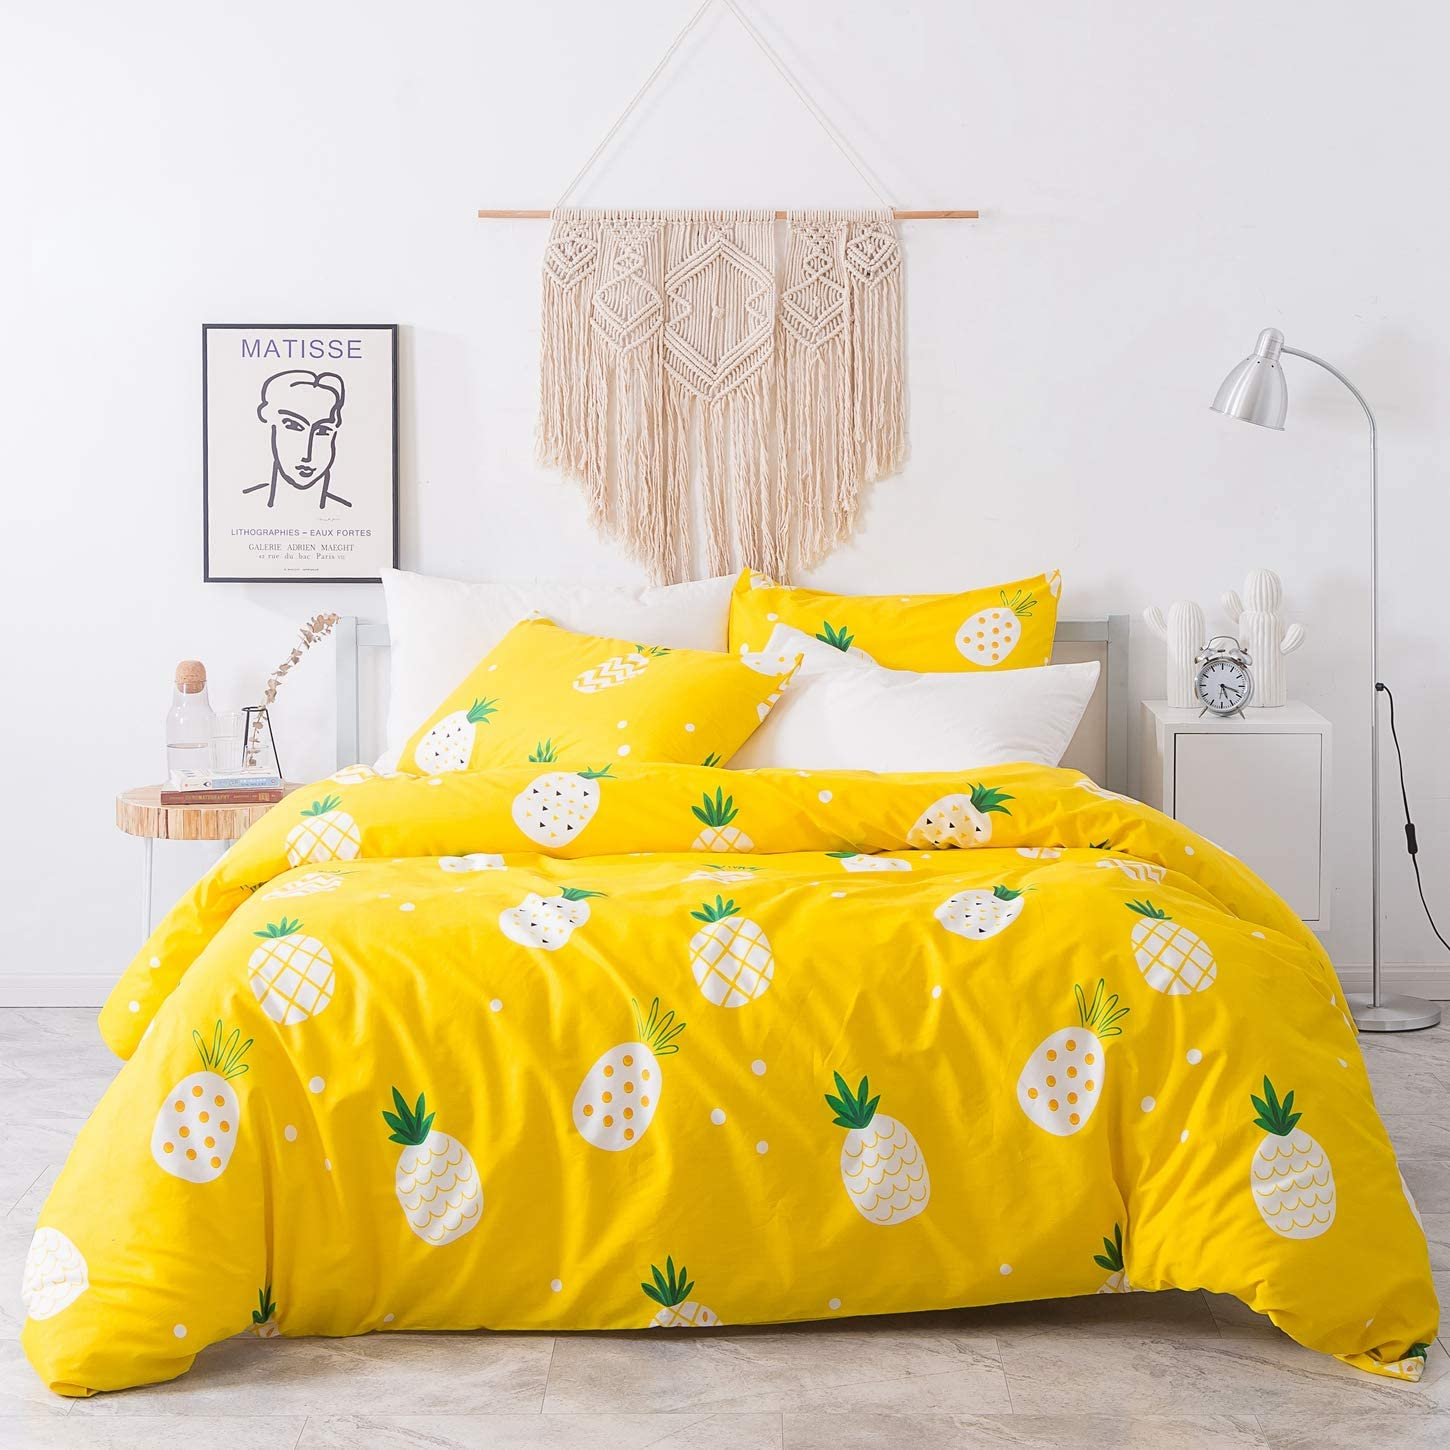 SUSYBAO 3 Pieces Duvet Cover Set 100% Natural Cotton Yellow Queen Size White Pineapple Pattern Bedding with Zipper Ties 1 Fruit Printed Duvet Cover 2 Pillowcases Hotel Quality Breathable Lightweight